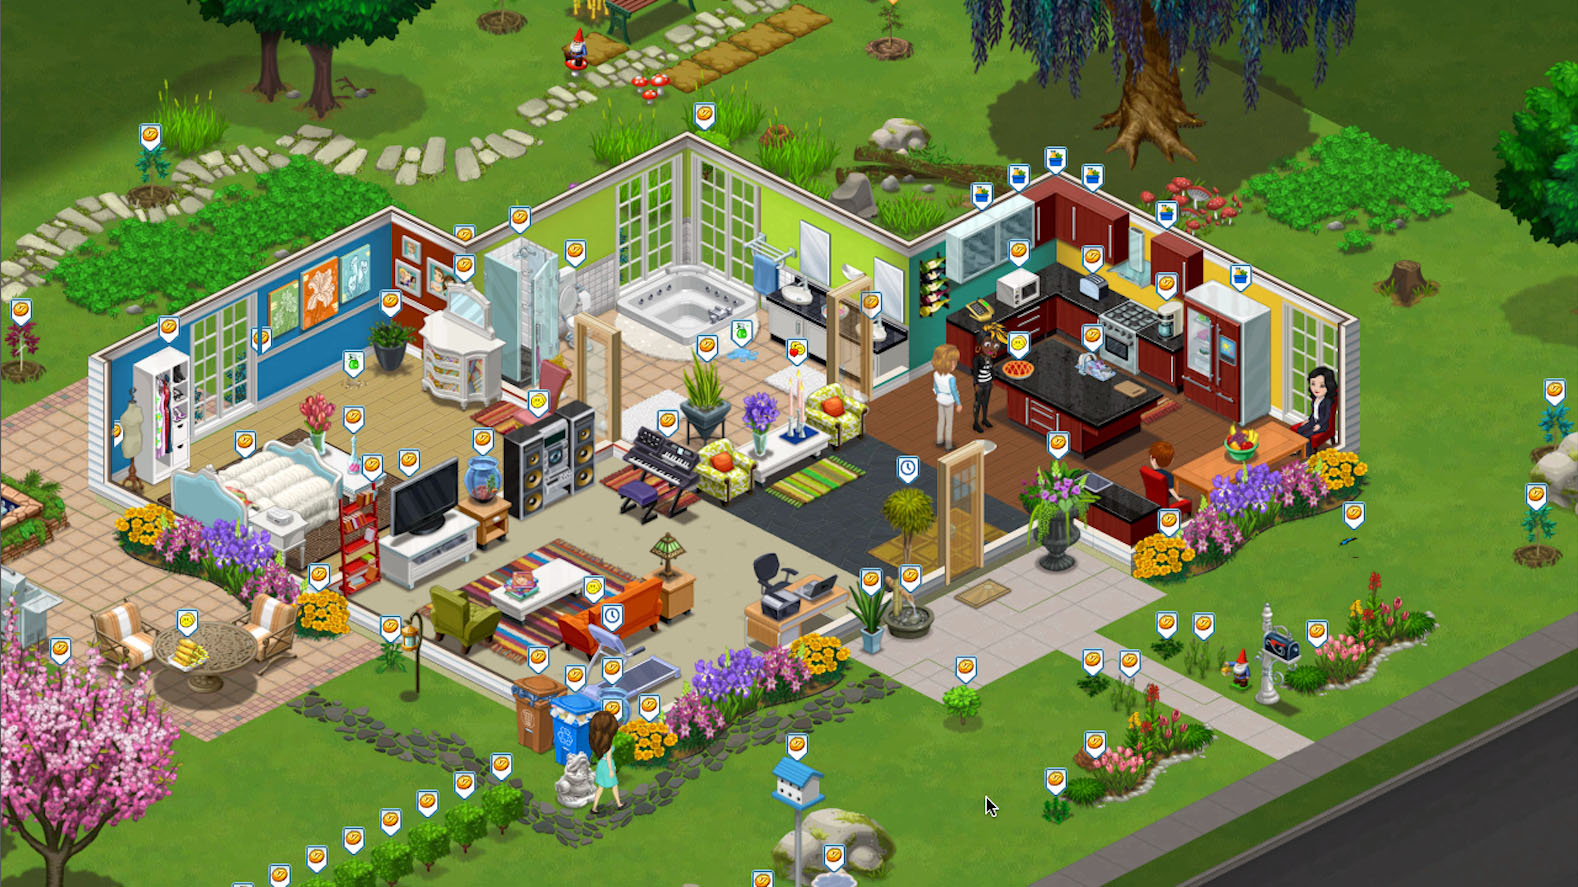 EA Sues Zynga For Infringing Copyrights To The Sims Social ...